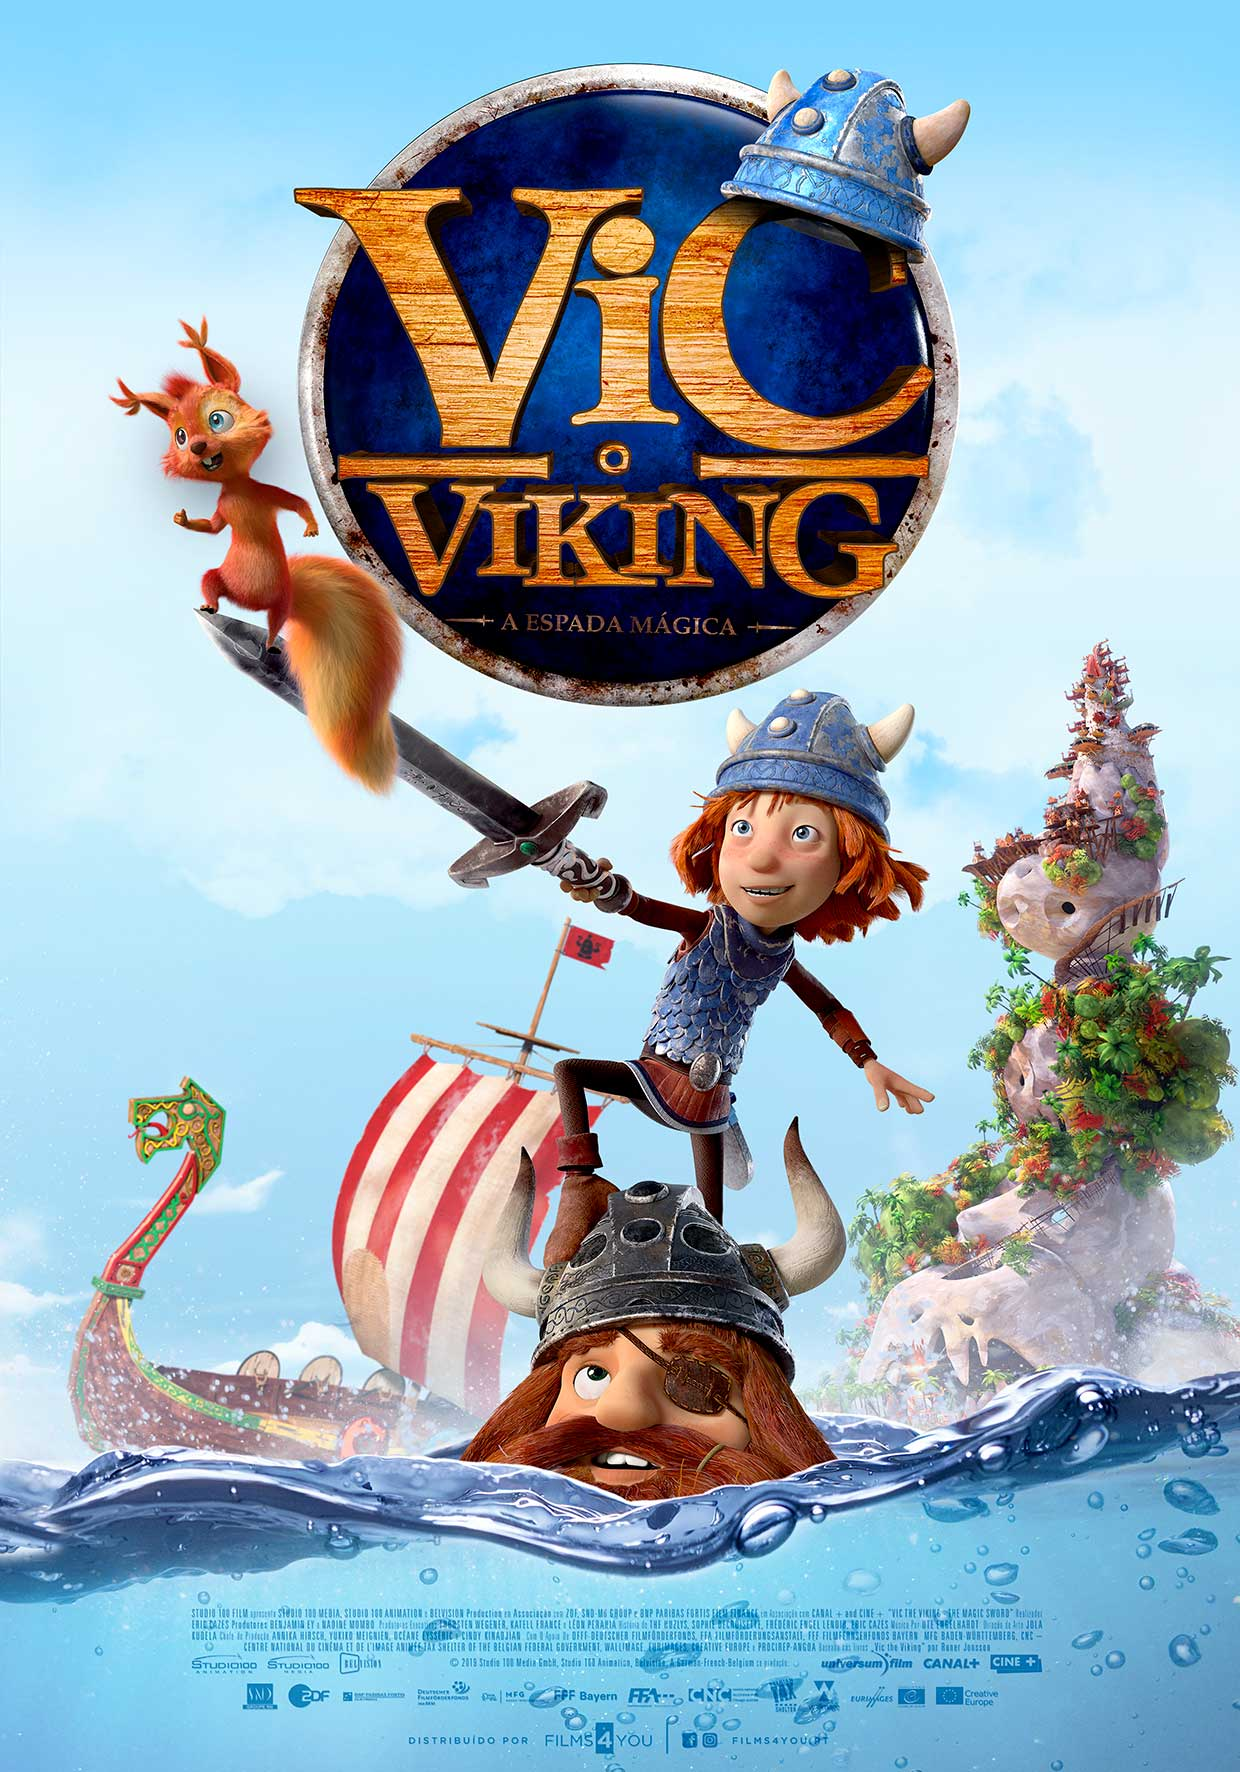 POSTER_VIC_O_VIKING_1_light